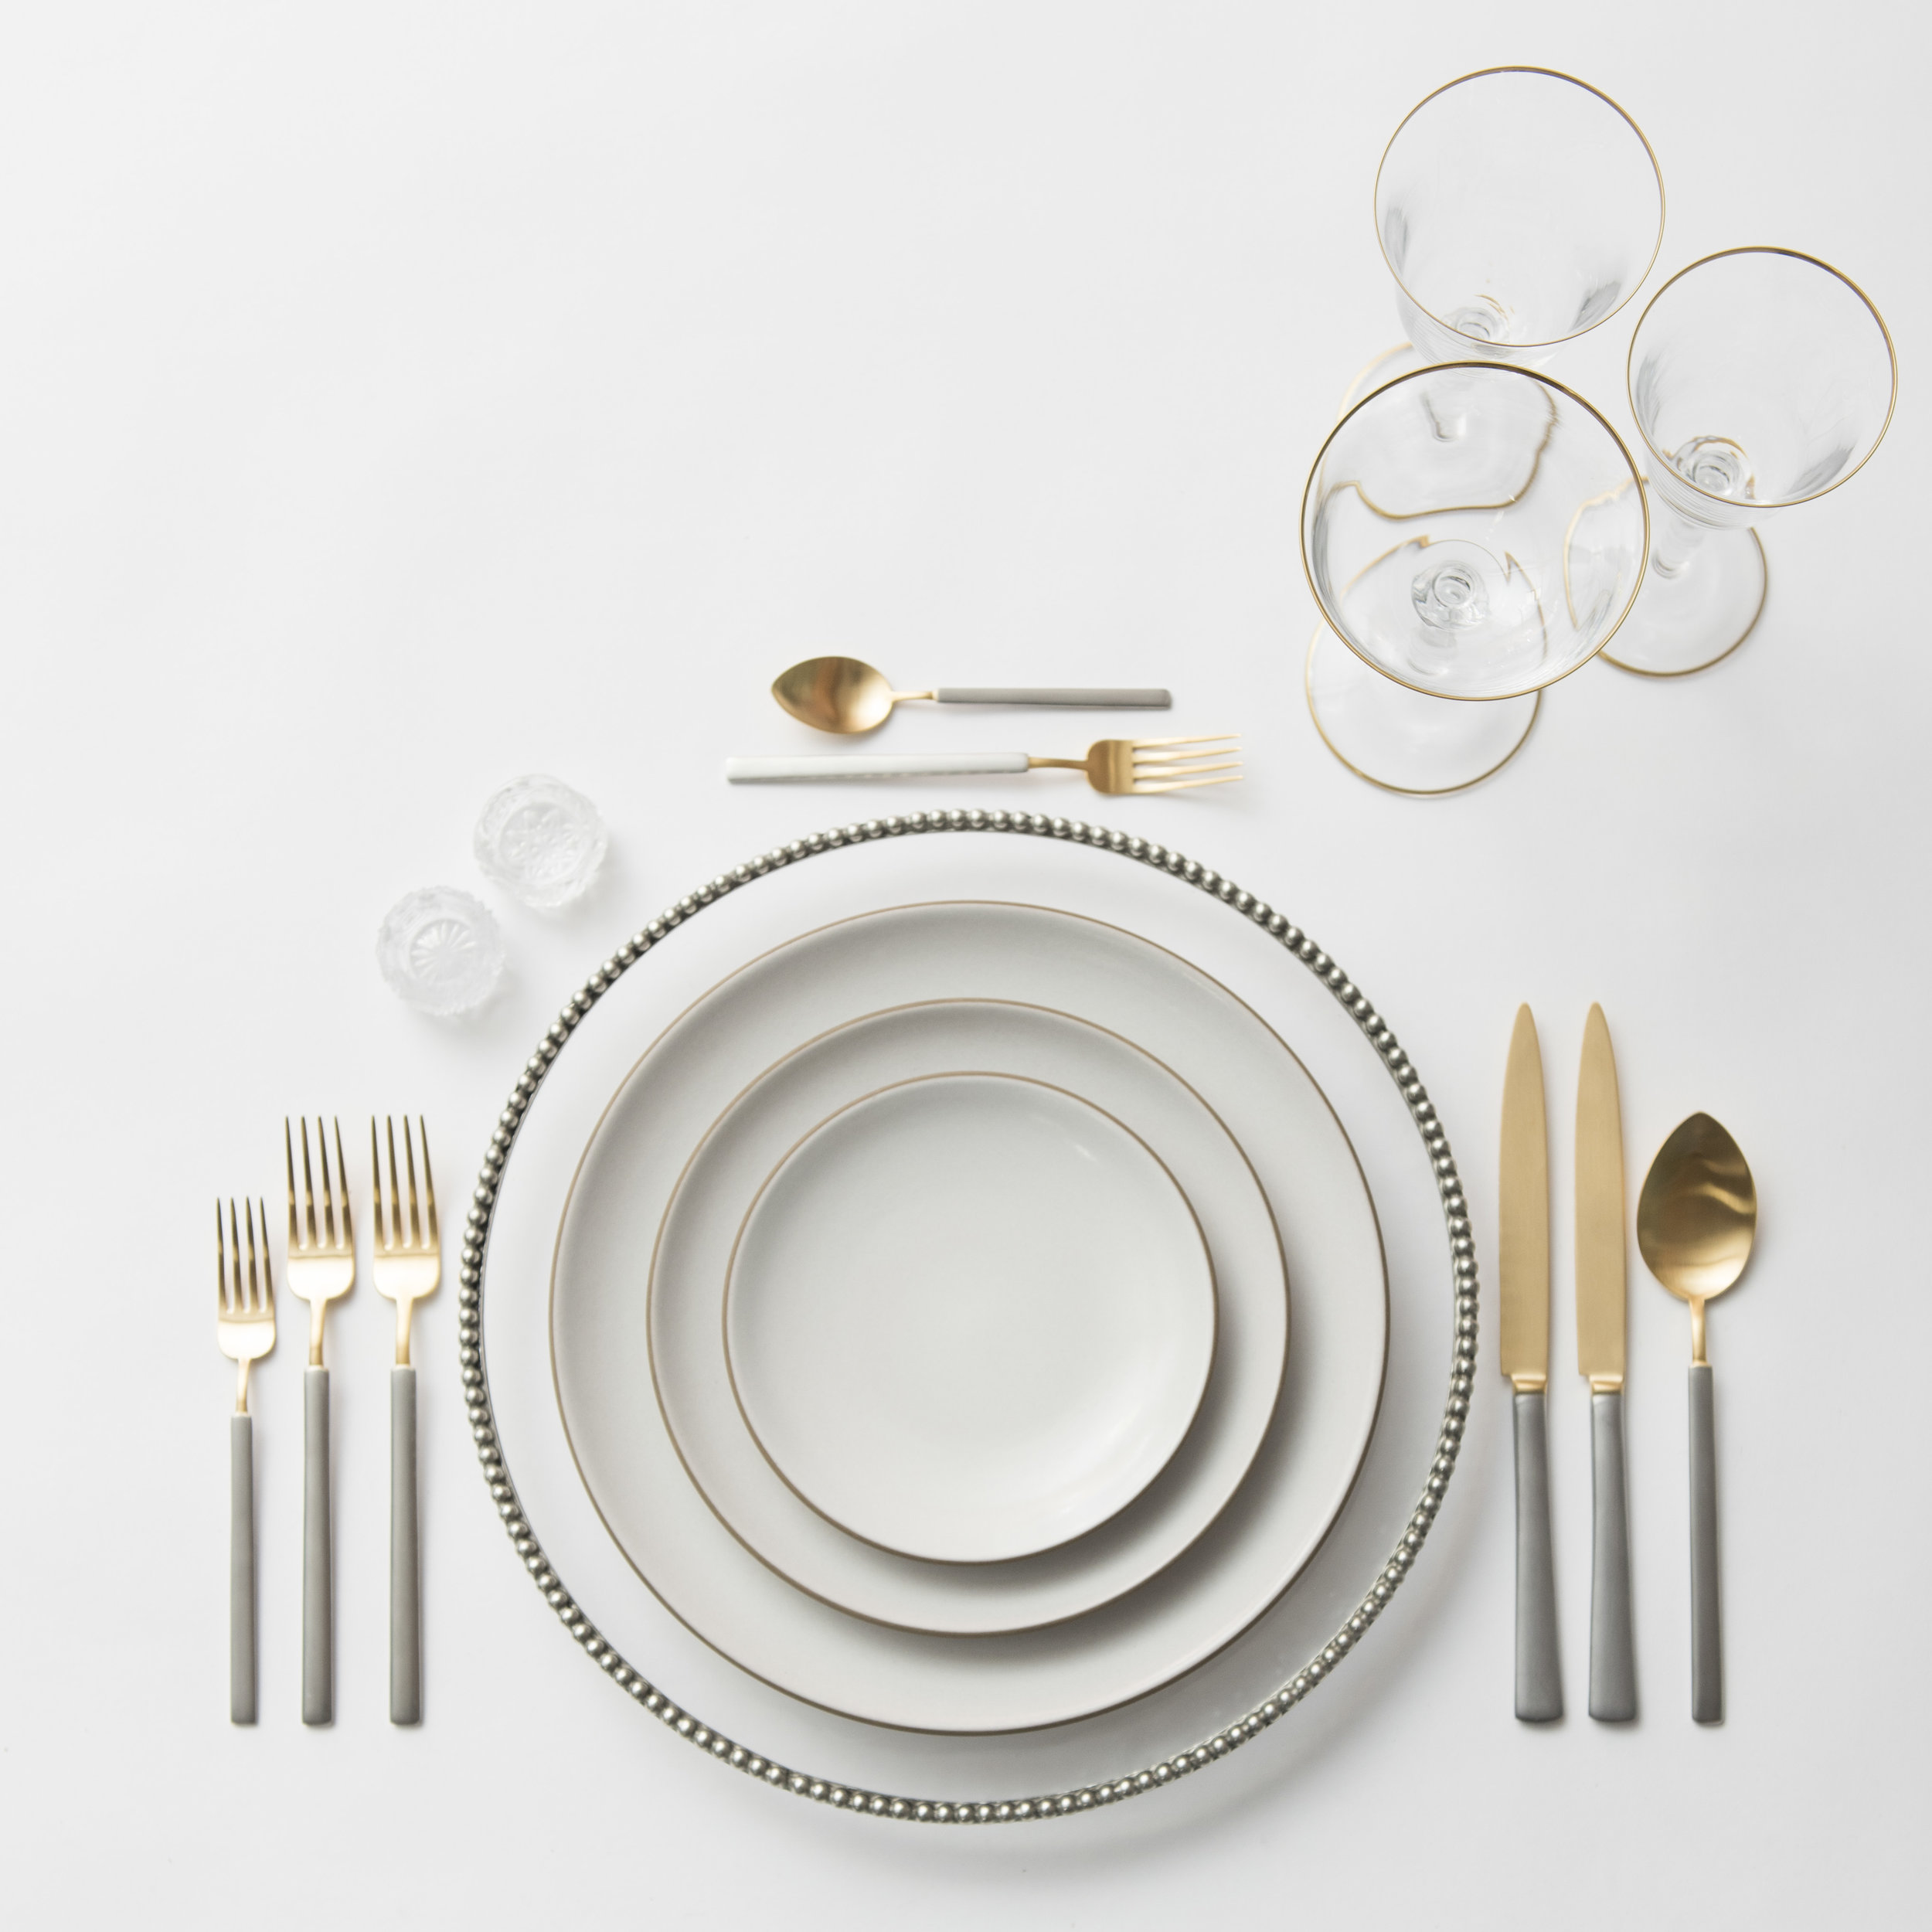 RENT: Pav é Glass Chargers in Pewter + Heath Ceramics in Opaque White + Axel Flatware in Matte 24k Gold/Silver + Chloe 24k Gold Rimmed Stemware + Antique Crystal Salt Cellars  SHOP:Chloe 24k Gold Rimmed Stemware